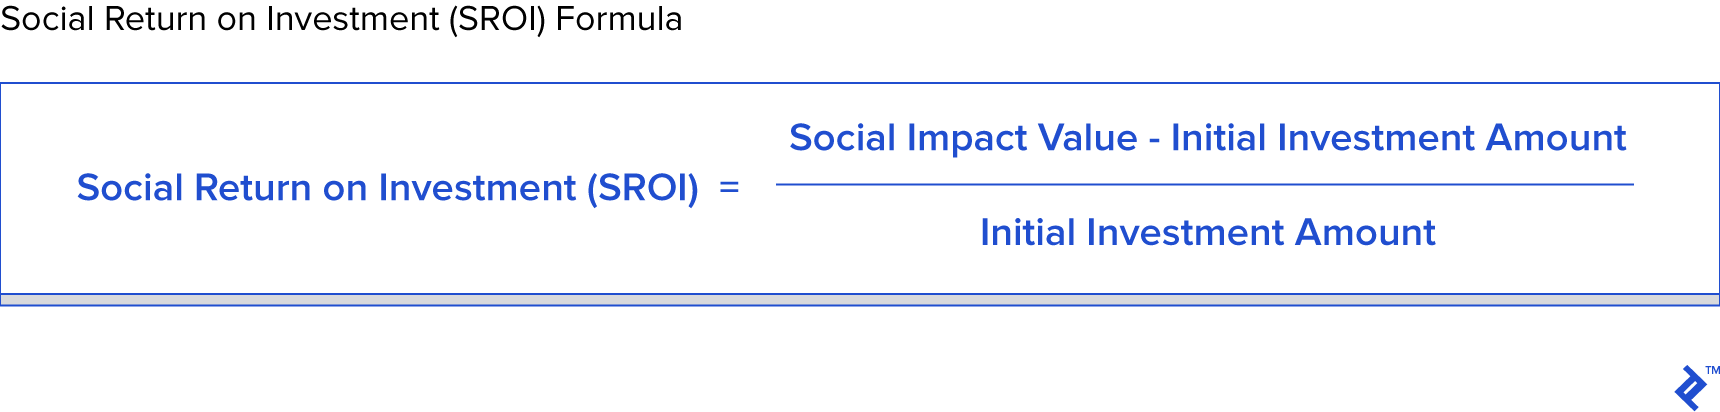 Social return on investment SROI formula